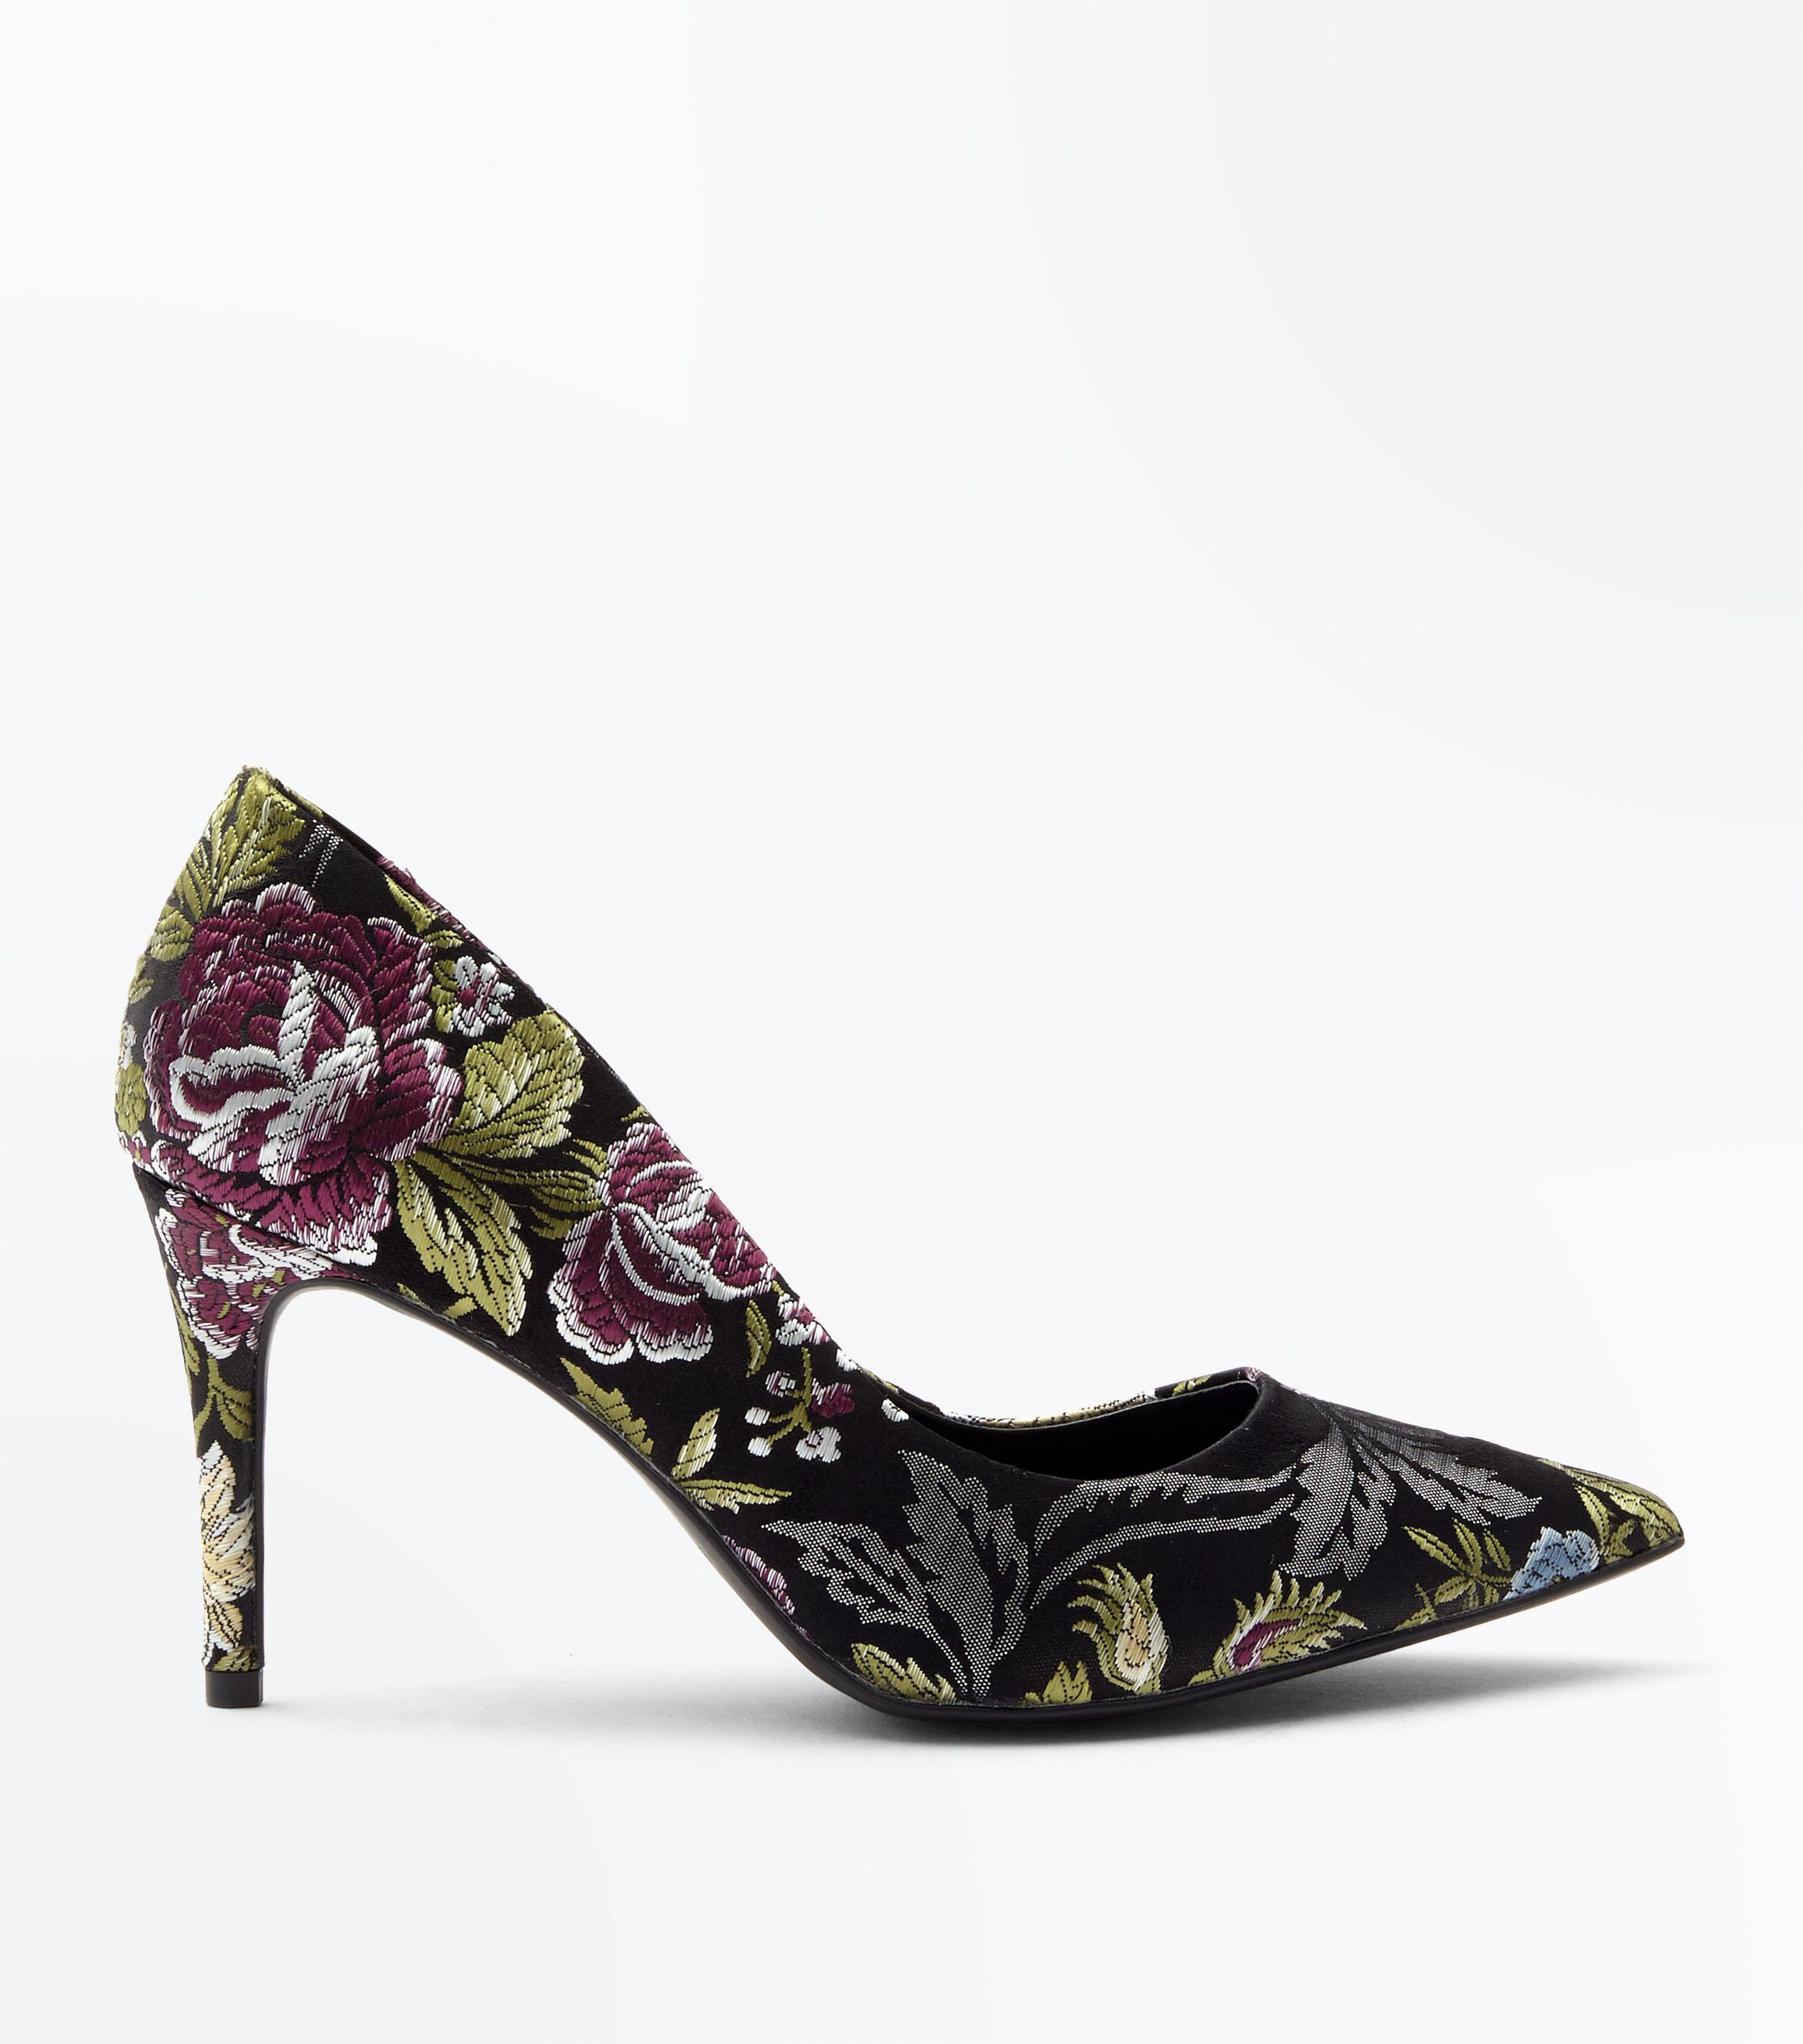 544532b370a New Look Black Floral Jacquard Pointed Court Shoes in Black - Lyst